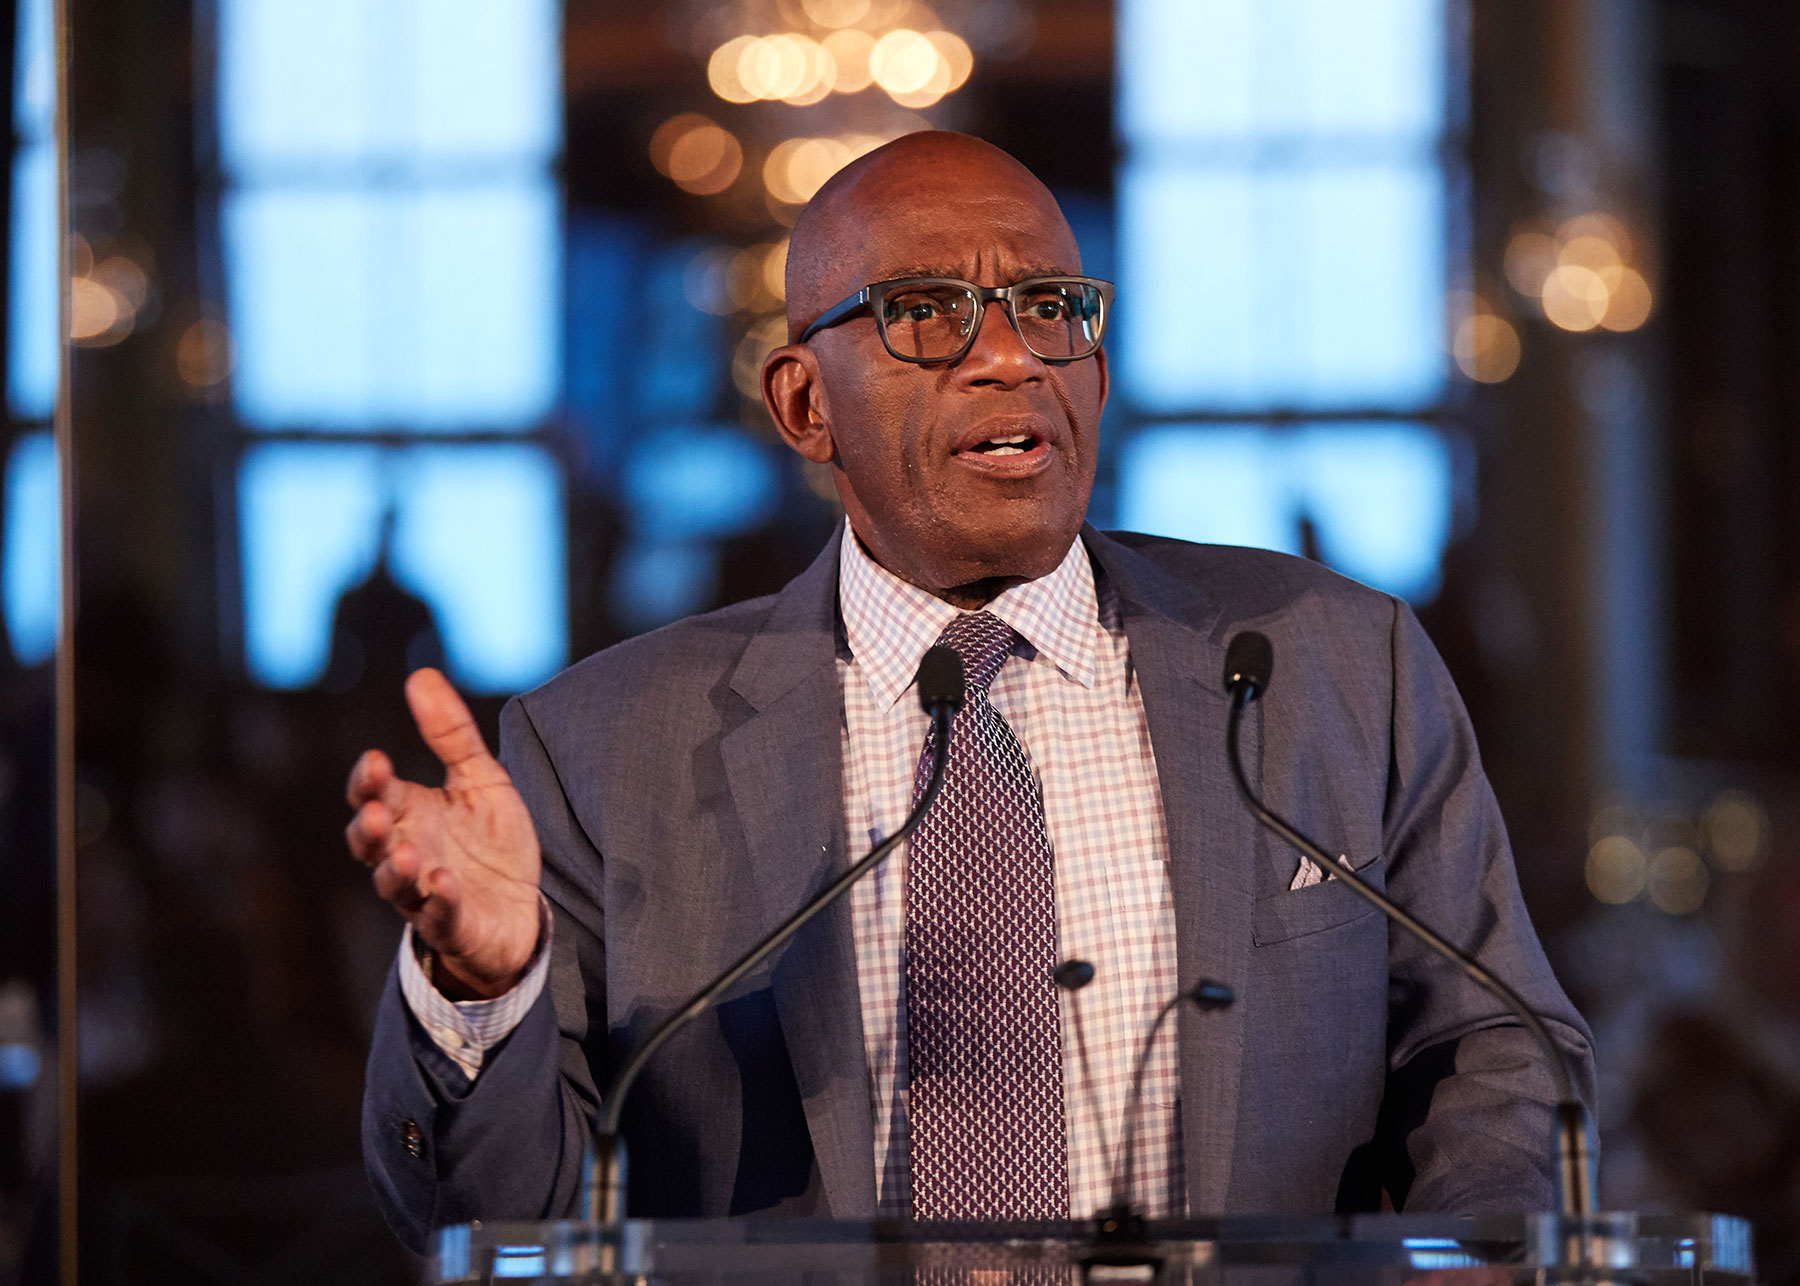 Al Roker speaks at the podium at the EOP 50th anniversary benefit gala in the Rainbow Room in NYC.